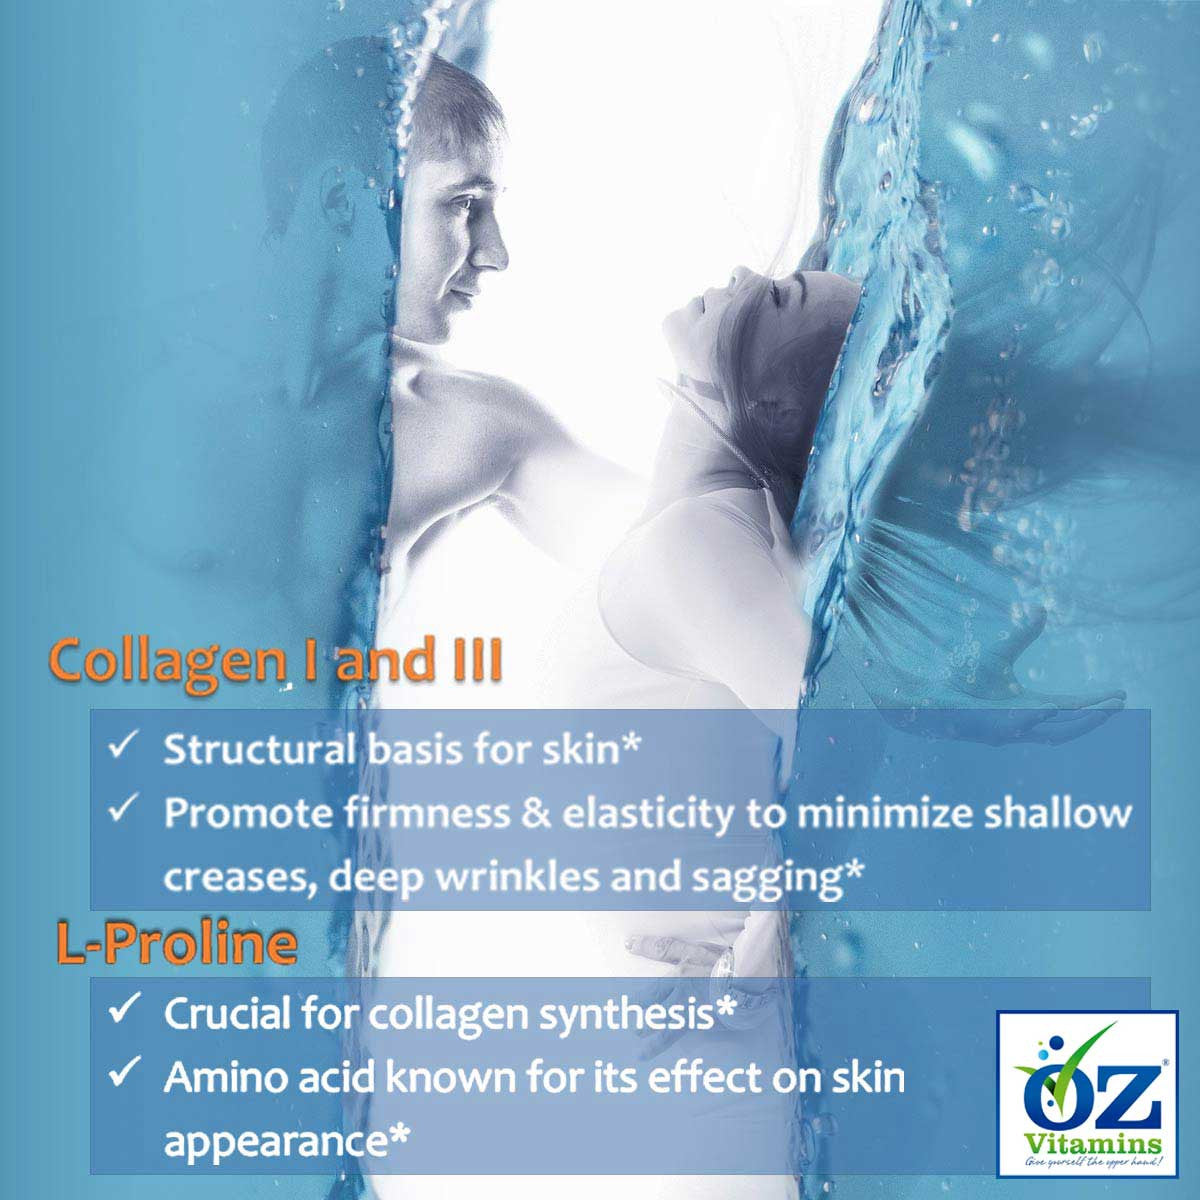 Oz Vitamins Better Skin contains Collagen I and III 6000mg/day which are the structural basis for skin. Collagen promotes firmness & elasticity to minimize shallow creases, deep wrinkles and sagging. Oz Vitamins Better Skin contains L-Proline 300mg/day which is crucial for collagen synthesis. L-Proline is an amino acid known for its effect on skin appearance.